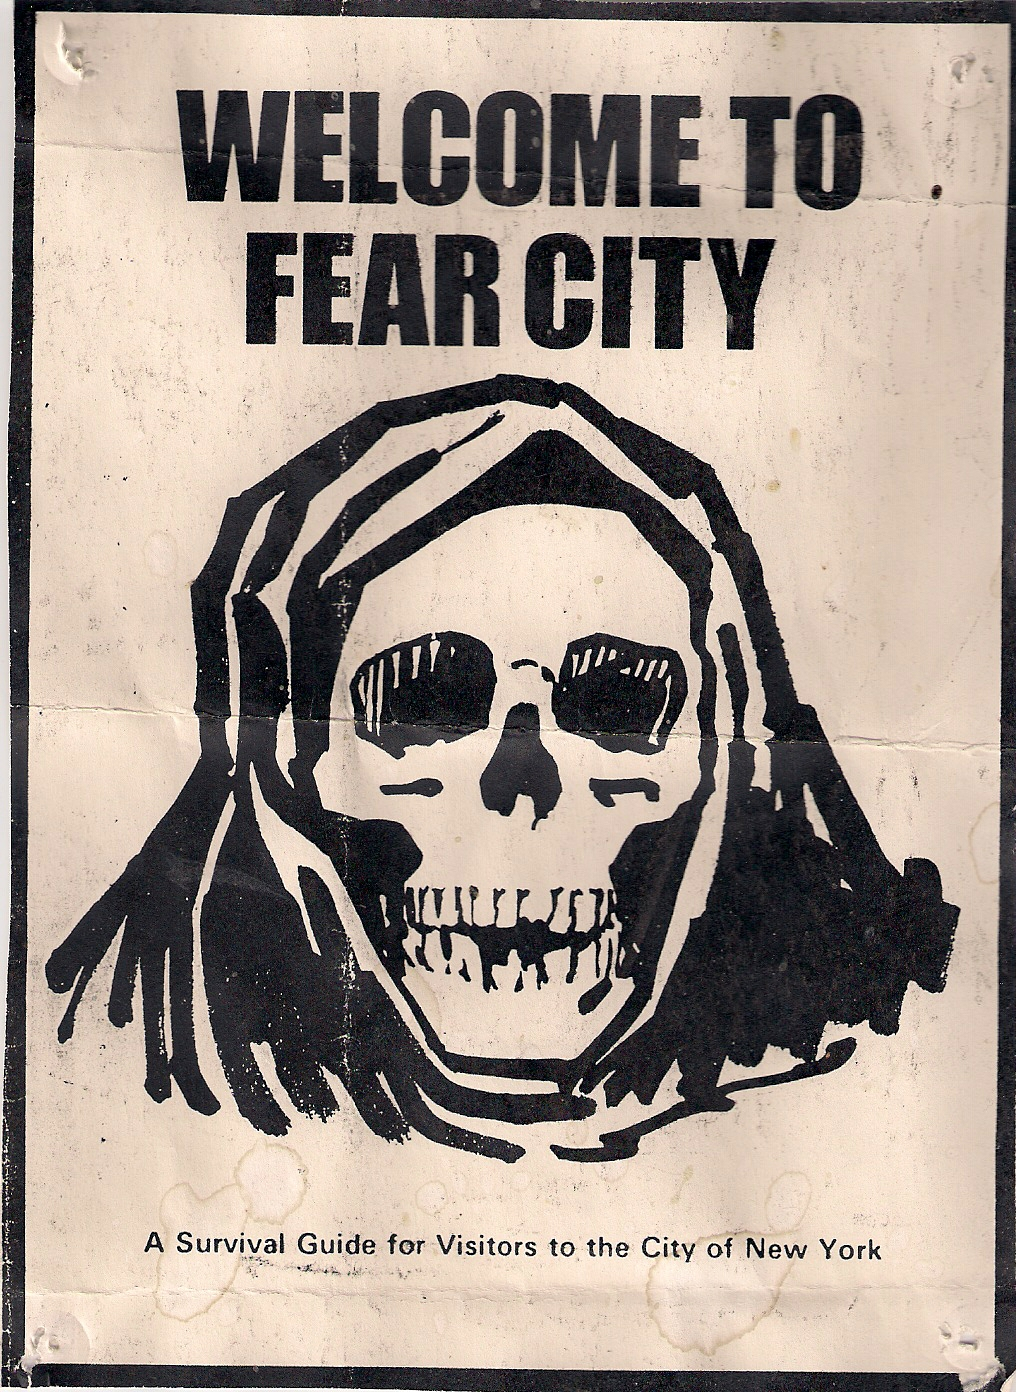 WelcometofearcityNewYork1975pamphlet